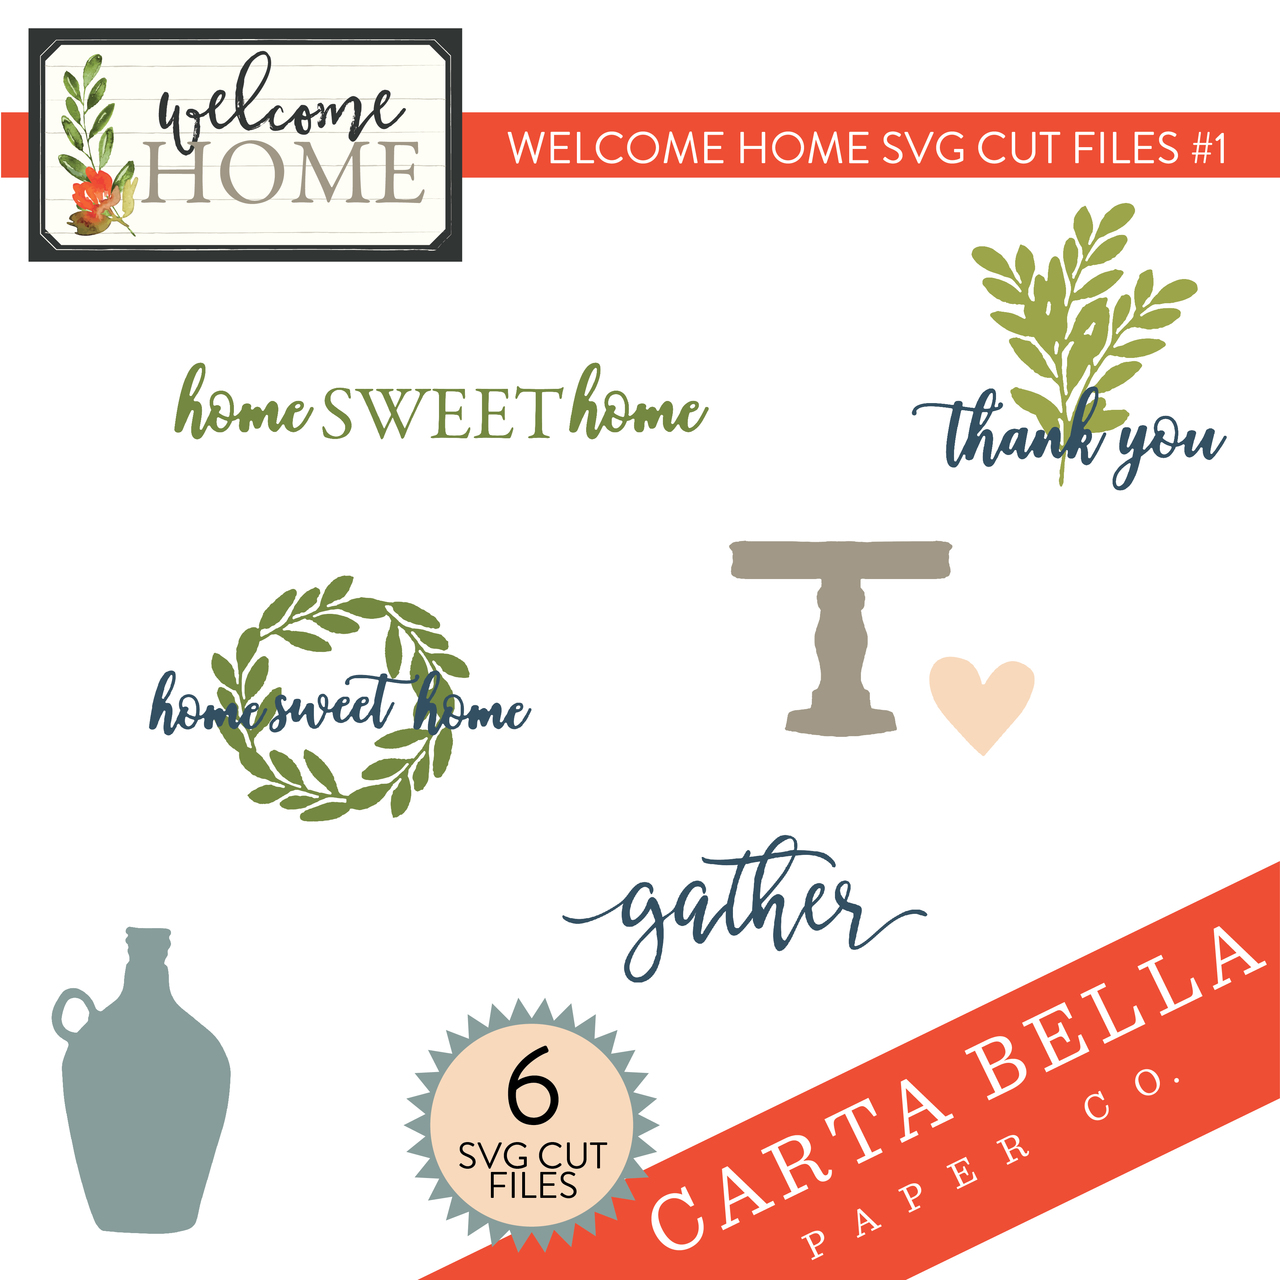 Welcome Home SVG Cut Files #1